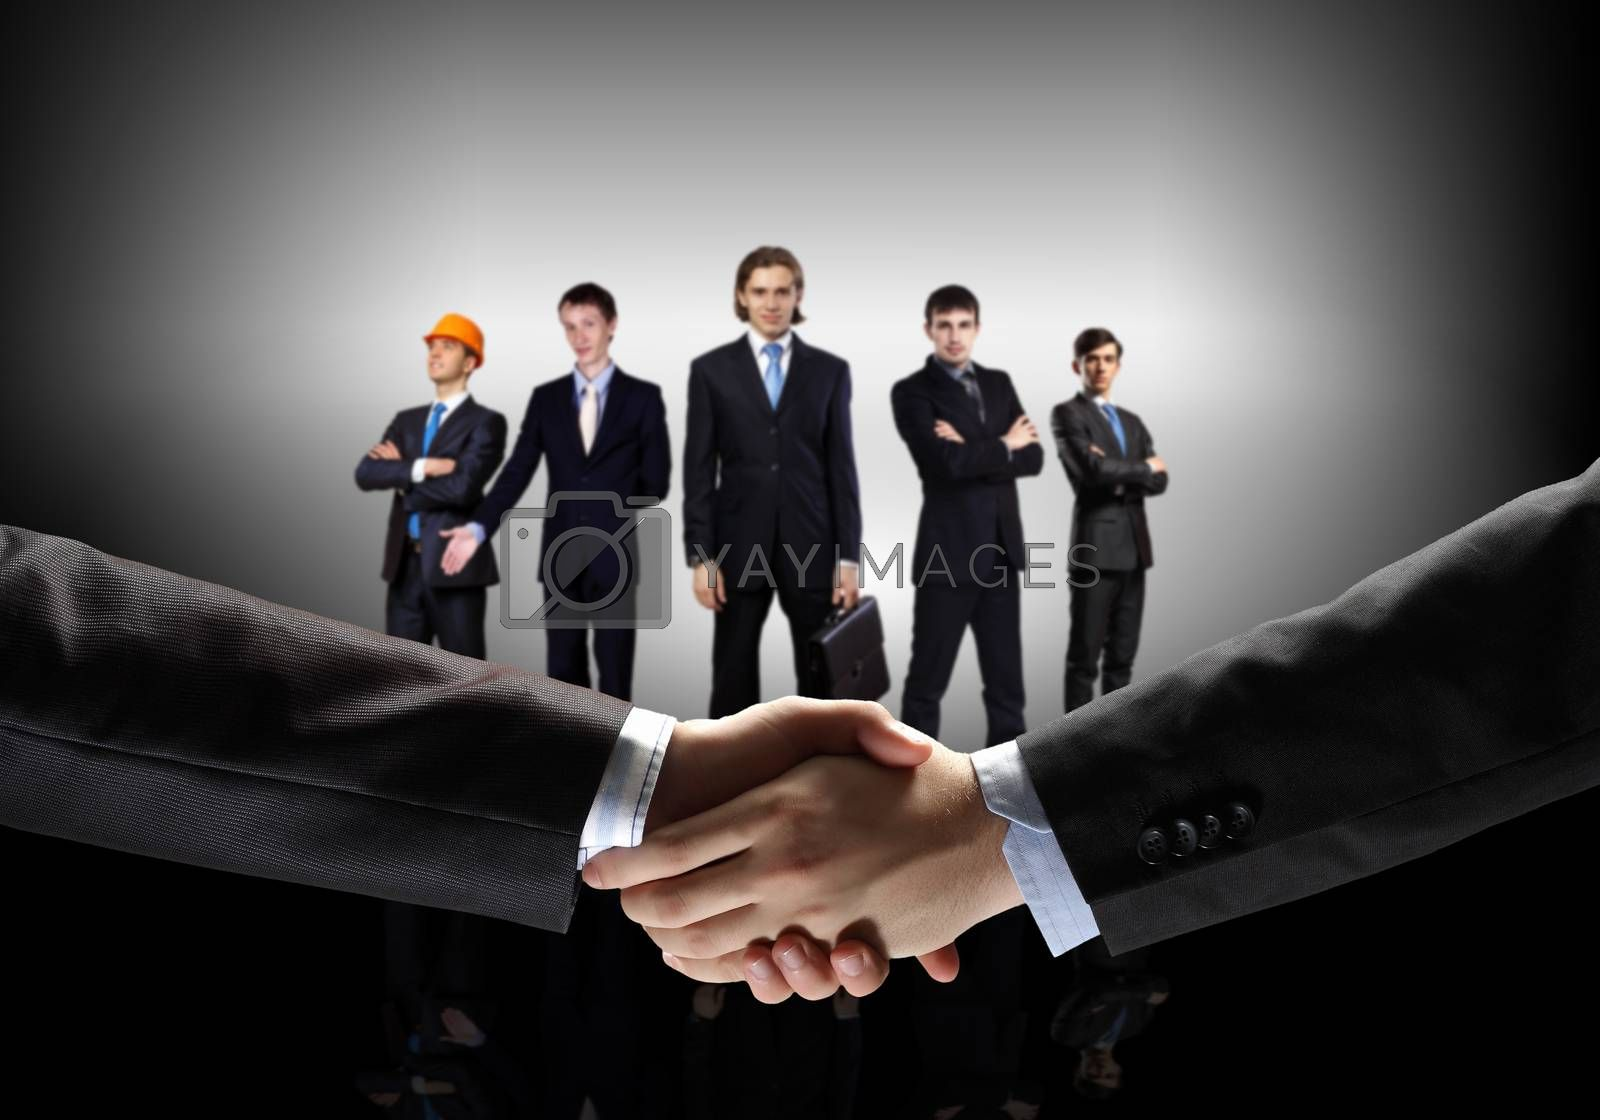 image of business handshake by Sergey Nivens